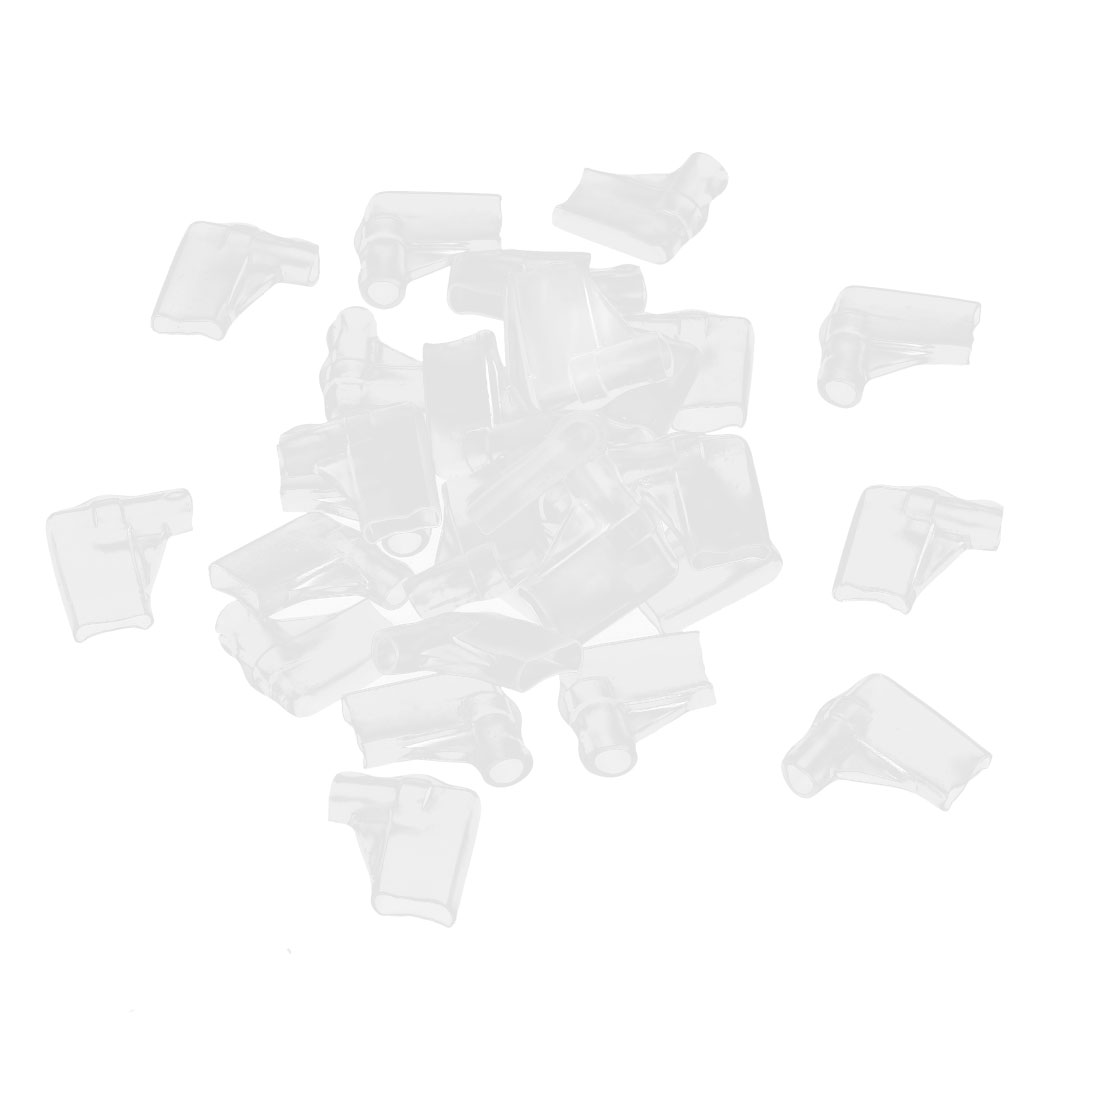 30 Pcs Clear PVC Connectors 6.3mm Elbow Female Terminal Sleeves